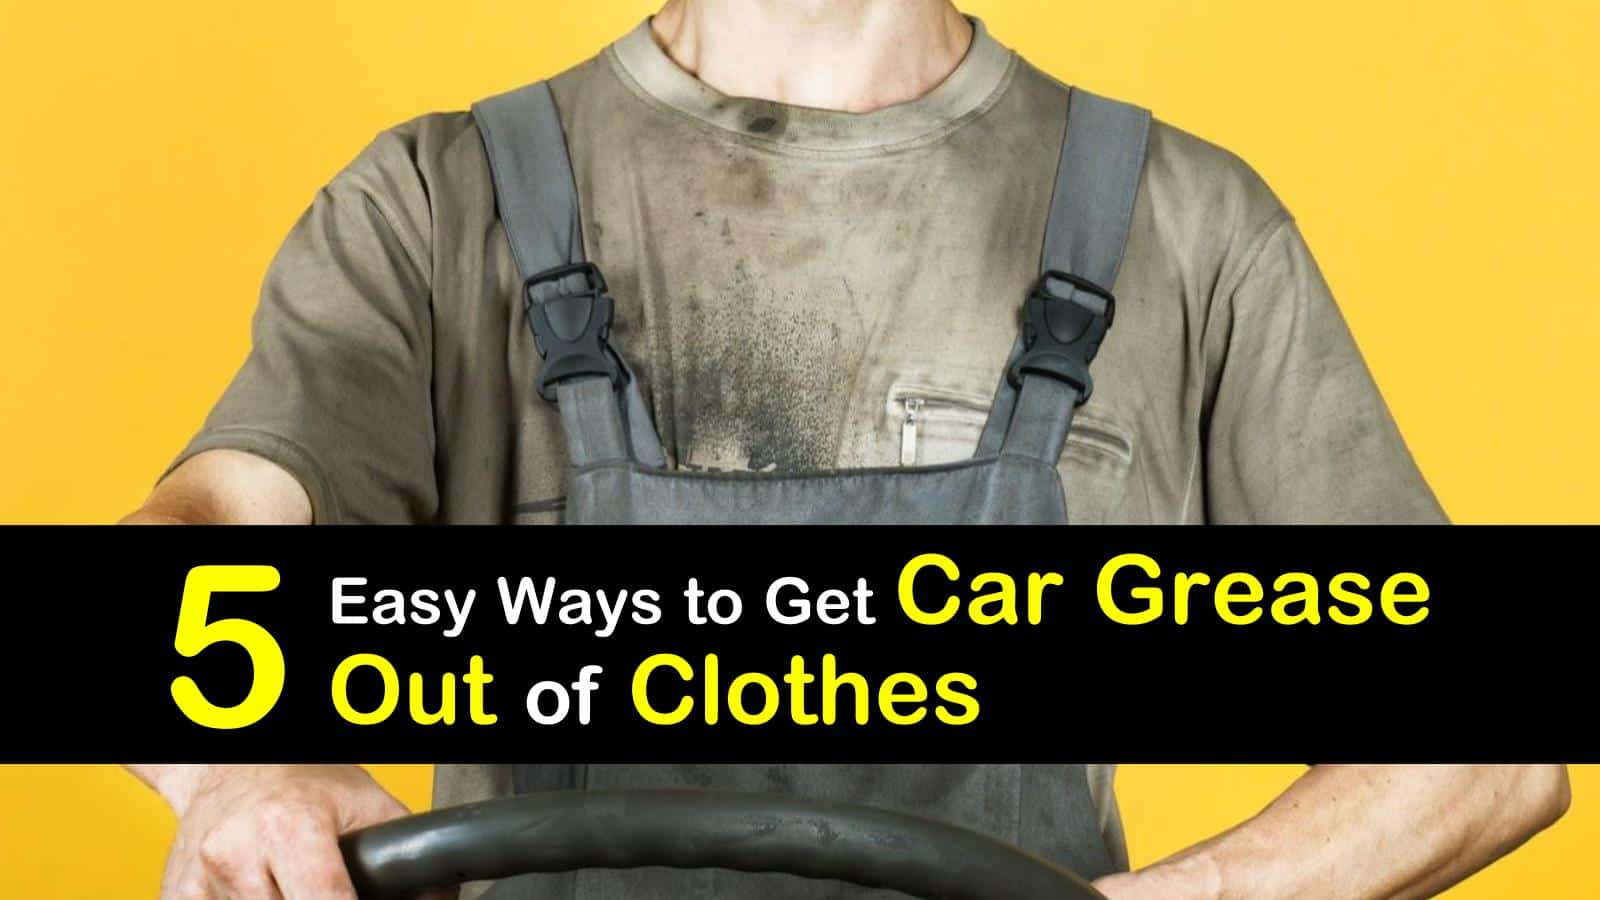 how to get car grease out of clothes titleimg1